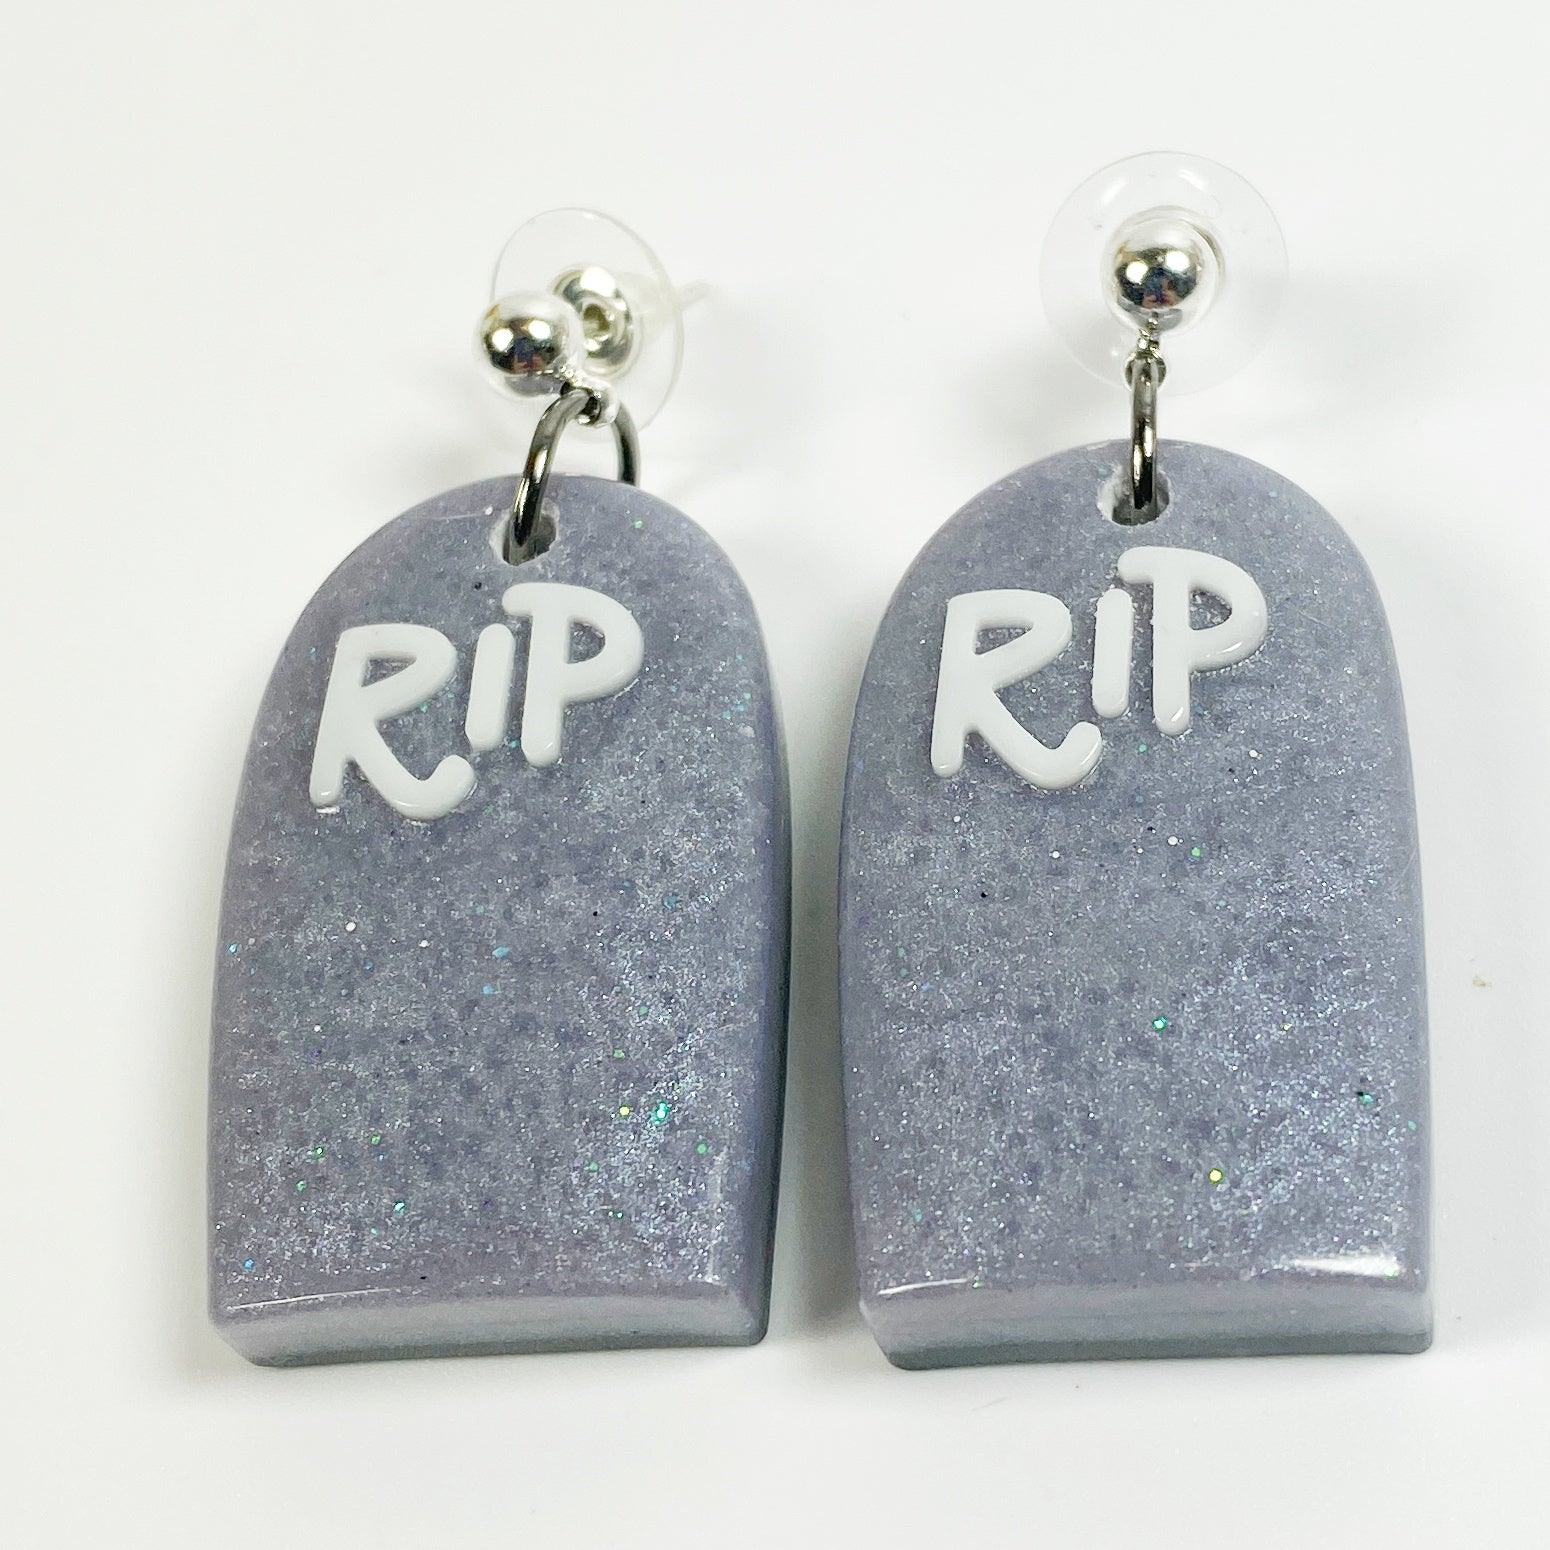 Graveyard RIP Resin Earrings, front view